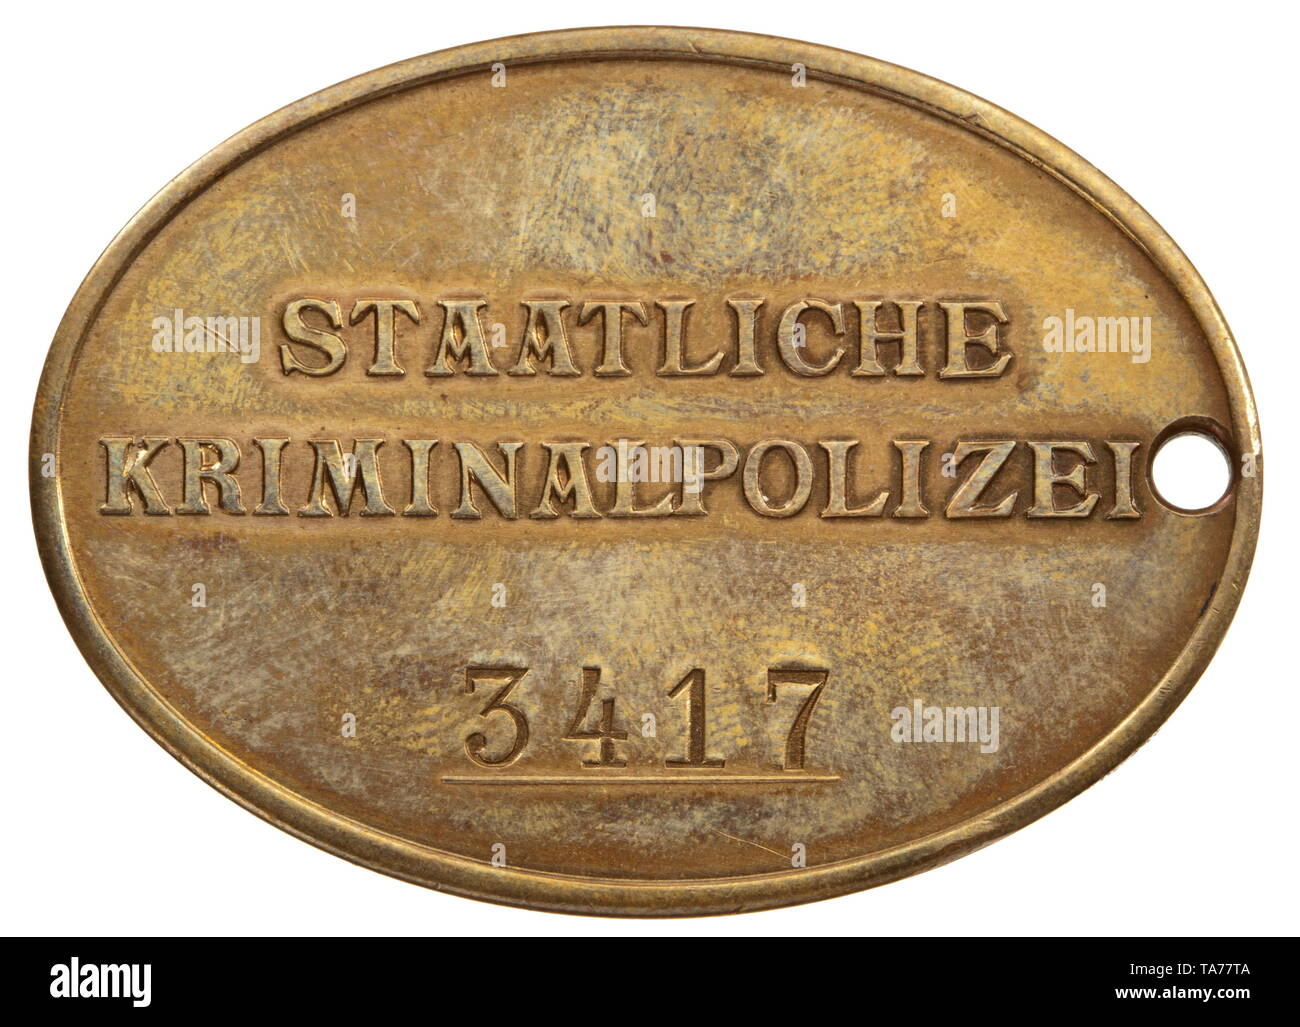 An identification badge of the national criminal police Bronze and non-ferrous metal, with national eagle embossed on the front. The reverse with embossed inscription 'STAATLICHE KRIMINALPOLIZEI' (tr. 'national criminal police') and struck number '3417' above a raised line. Dimensions circa 51 x 37.2 mm. Weight 29.6 g. Comes with a blueprint concerning retirement issued to a detective chief constable. historic, historical, 20th century, Additional-Rights-Clearance-Info-Not-Available - Stock Image